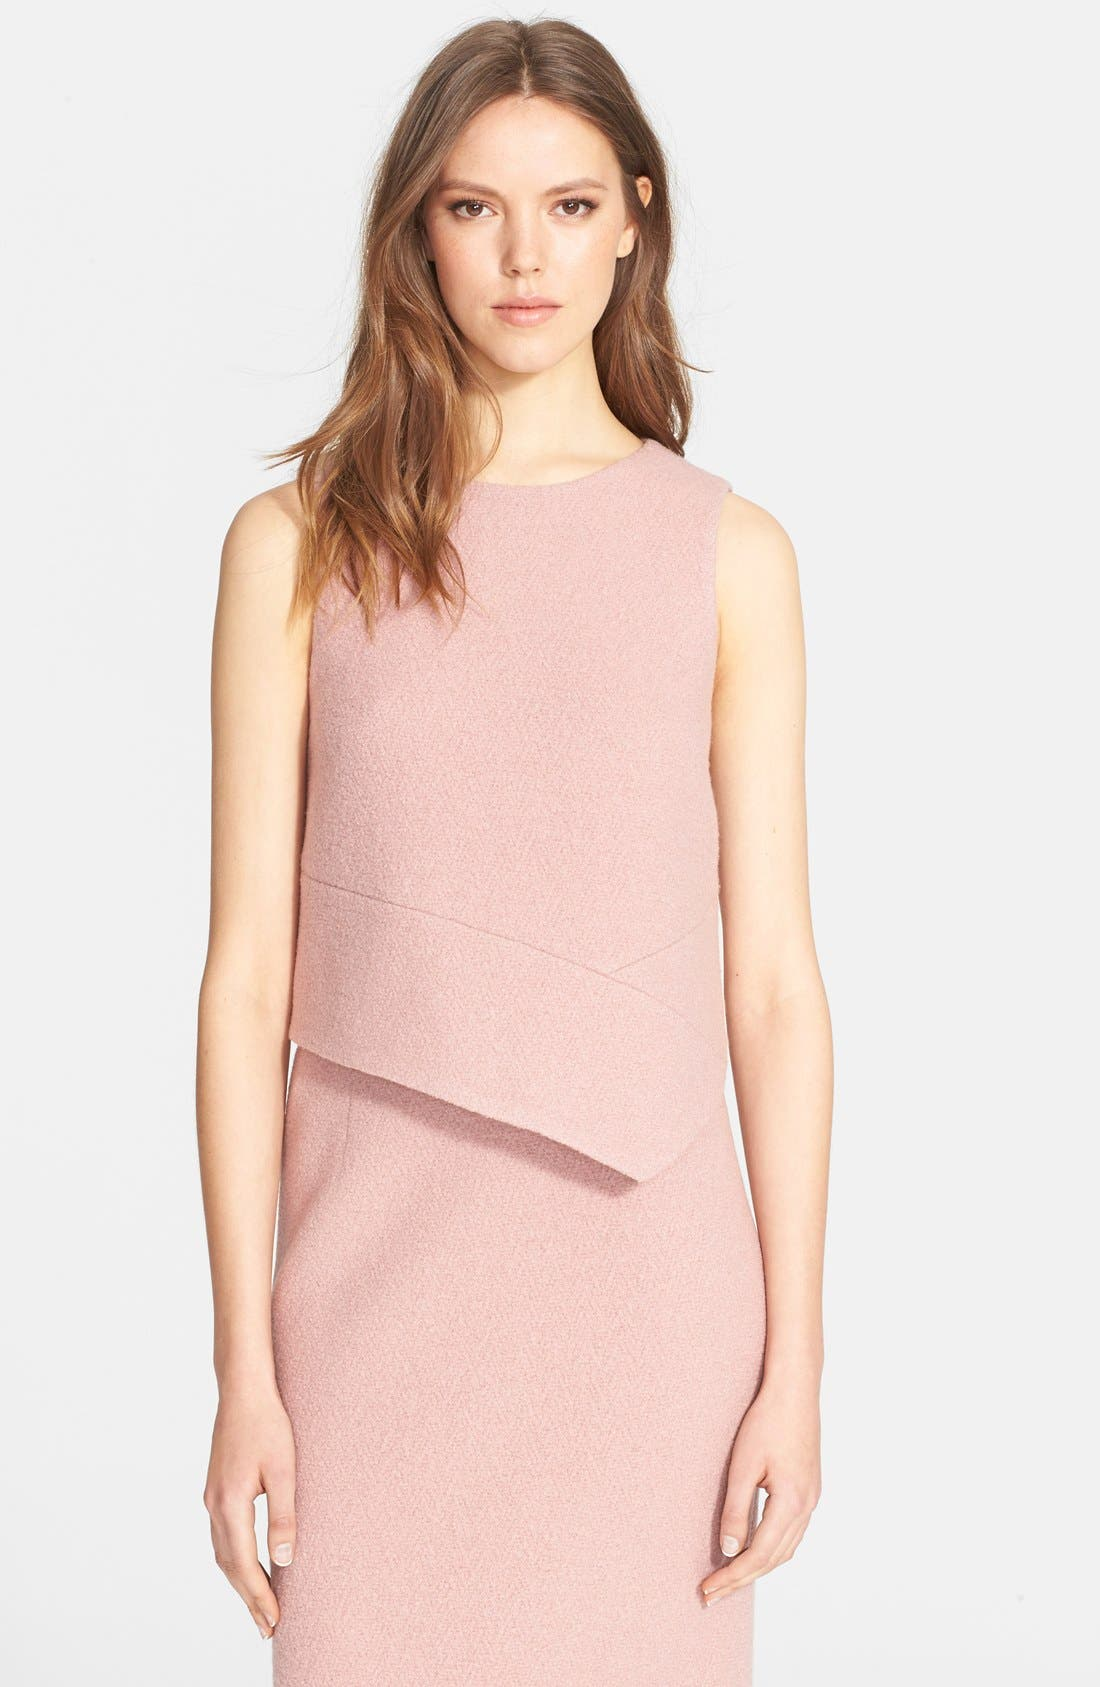 Main Image - Tibi Bouclé Knit Sleeveless Top